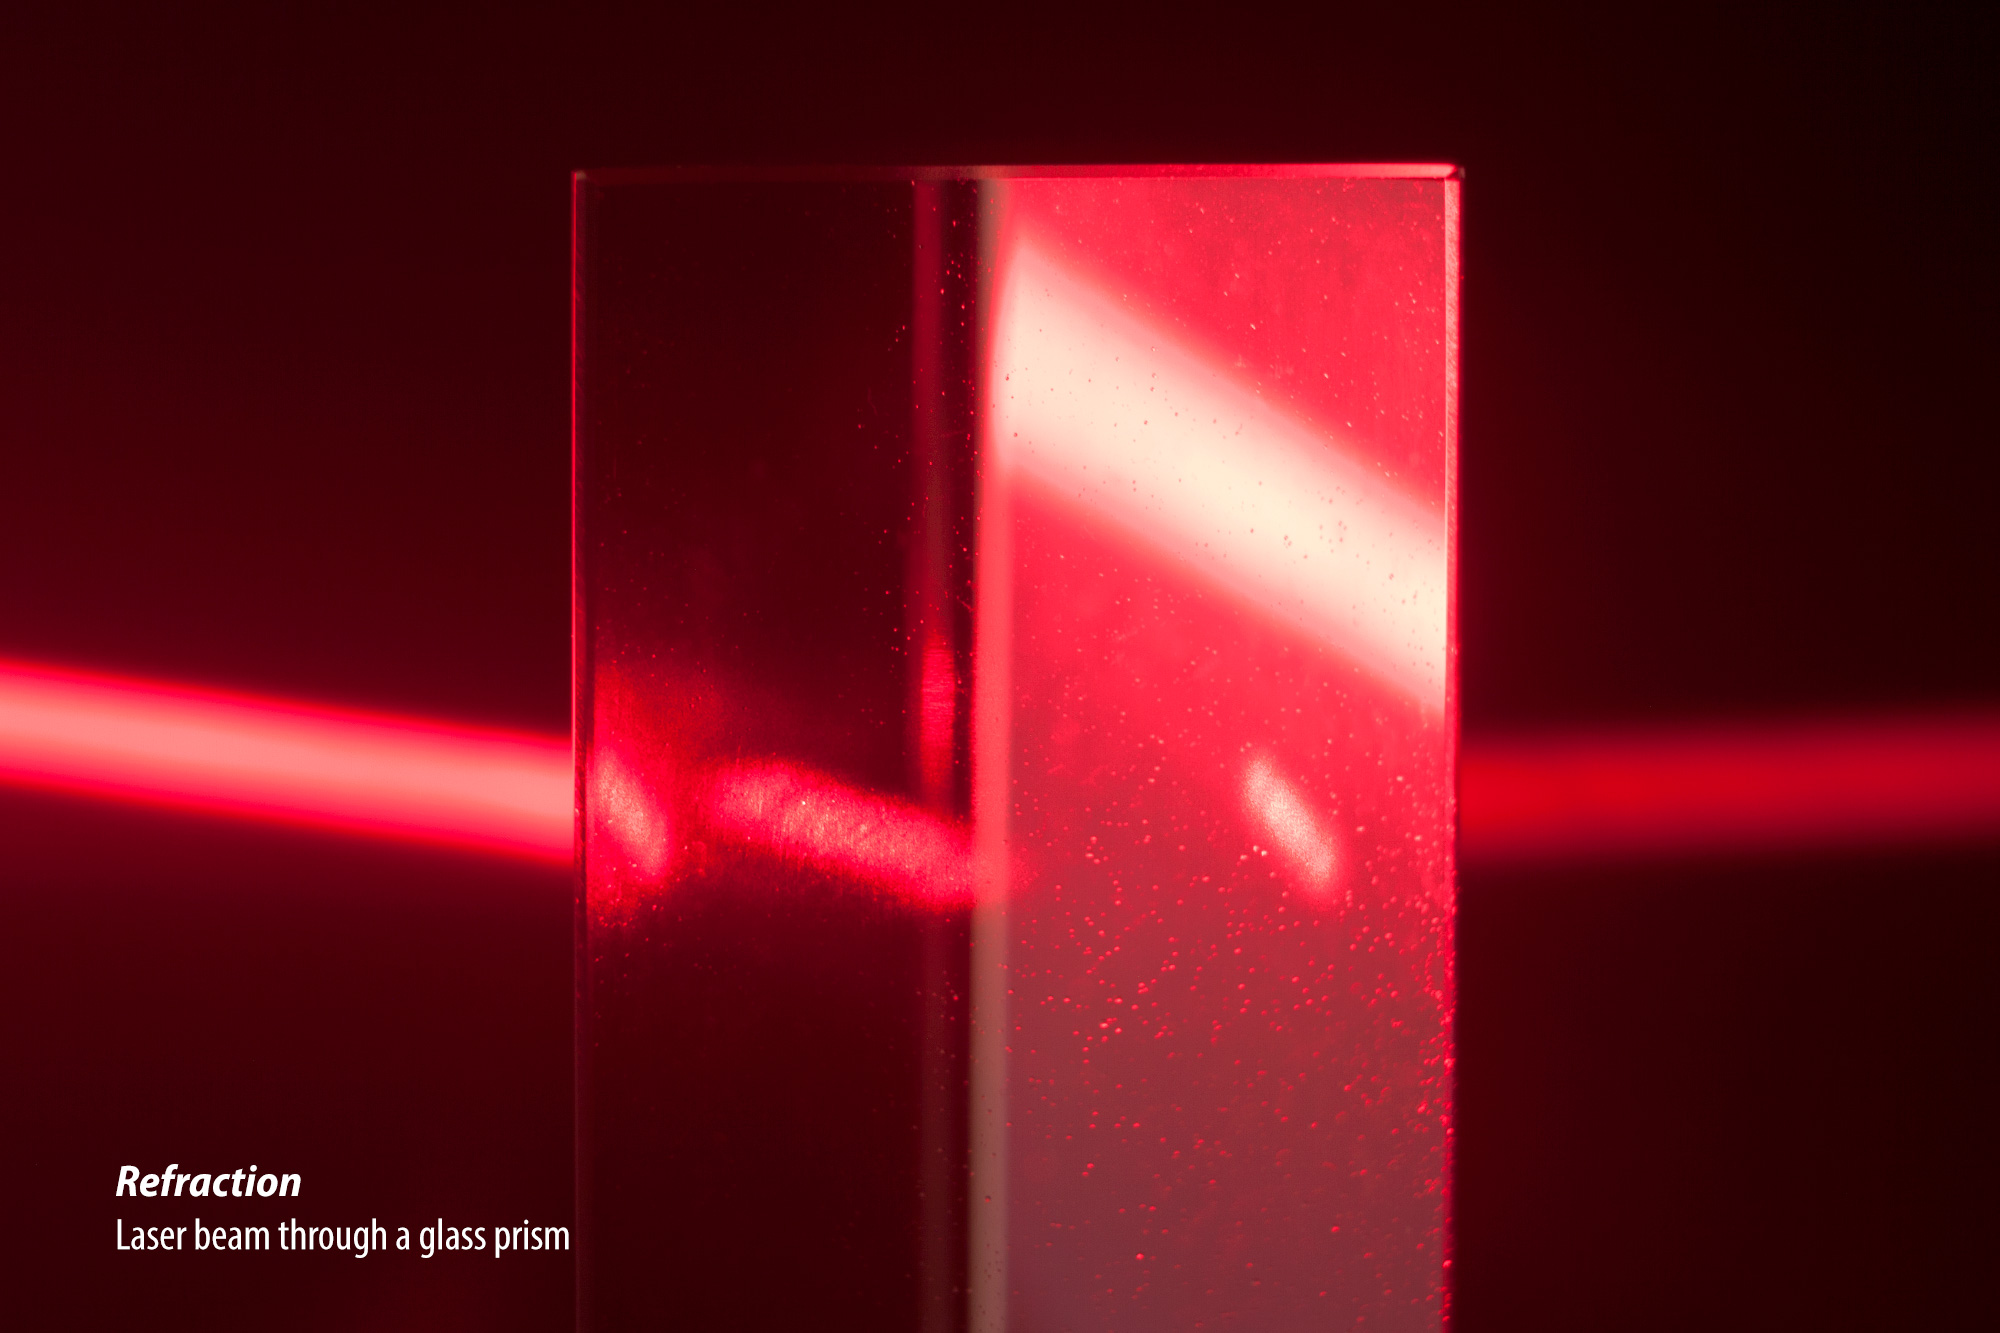 Laser beam through a glass prism